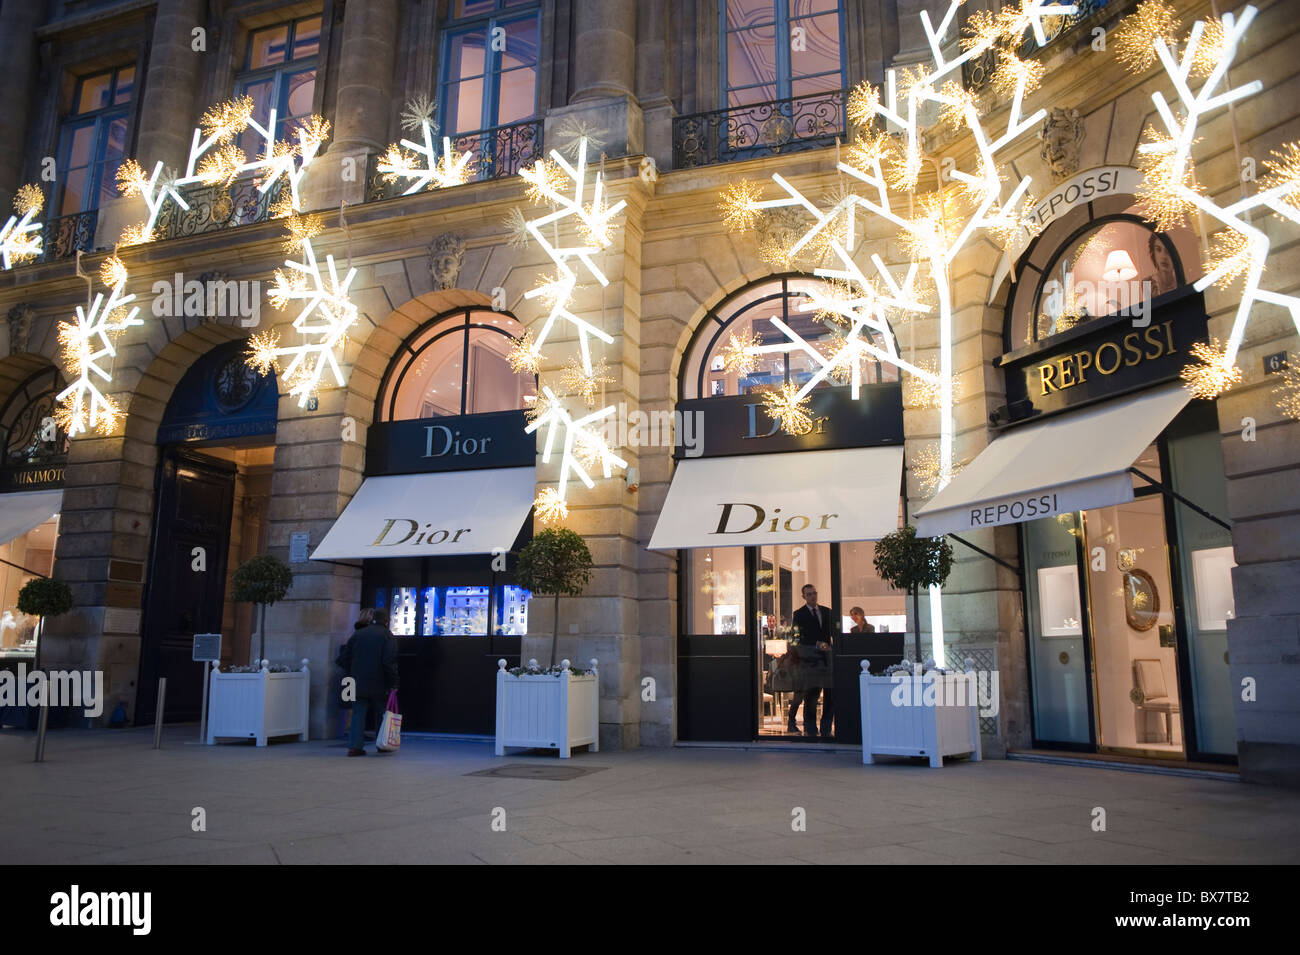 Magasin Led Paris Paris France Luxury Christmas Shopping Dior Store